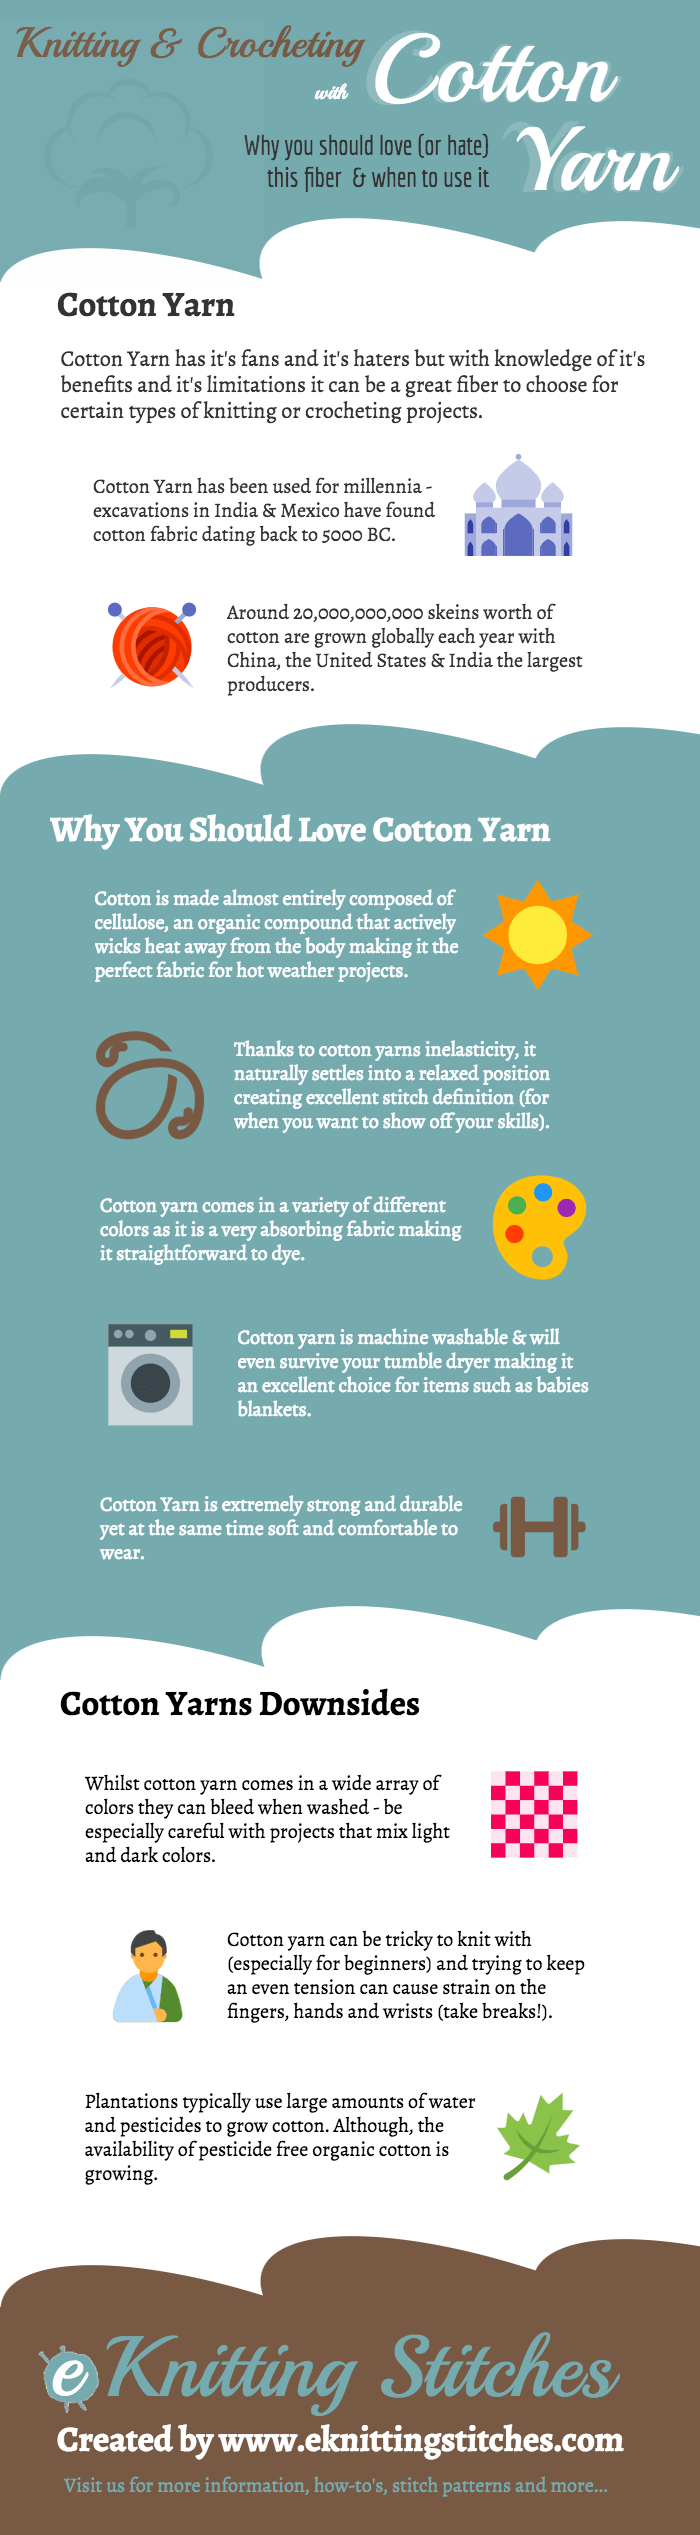 Infographic on the benefits & drawbacks of knitting with cotton yarn